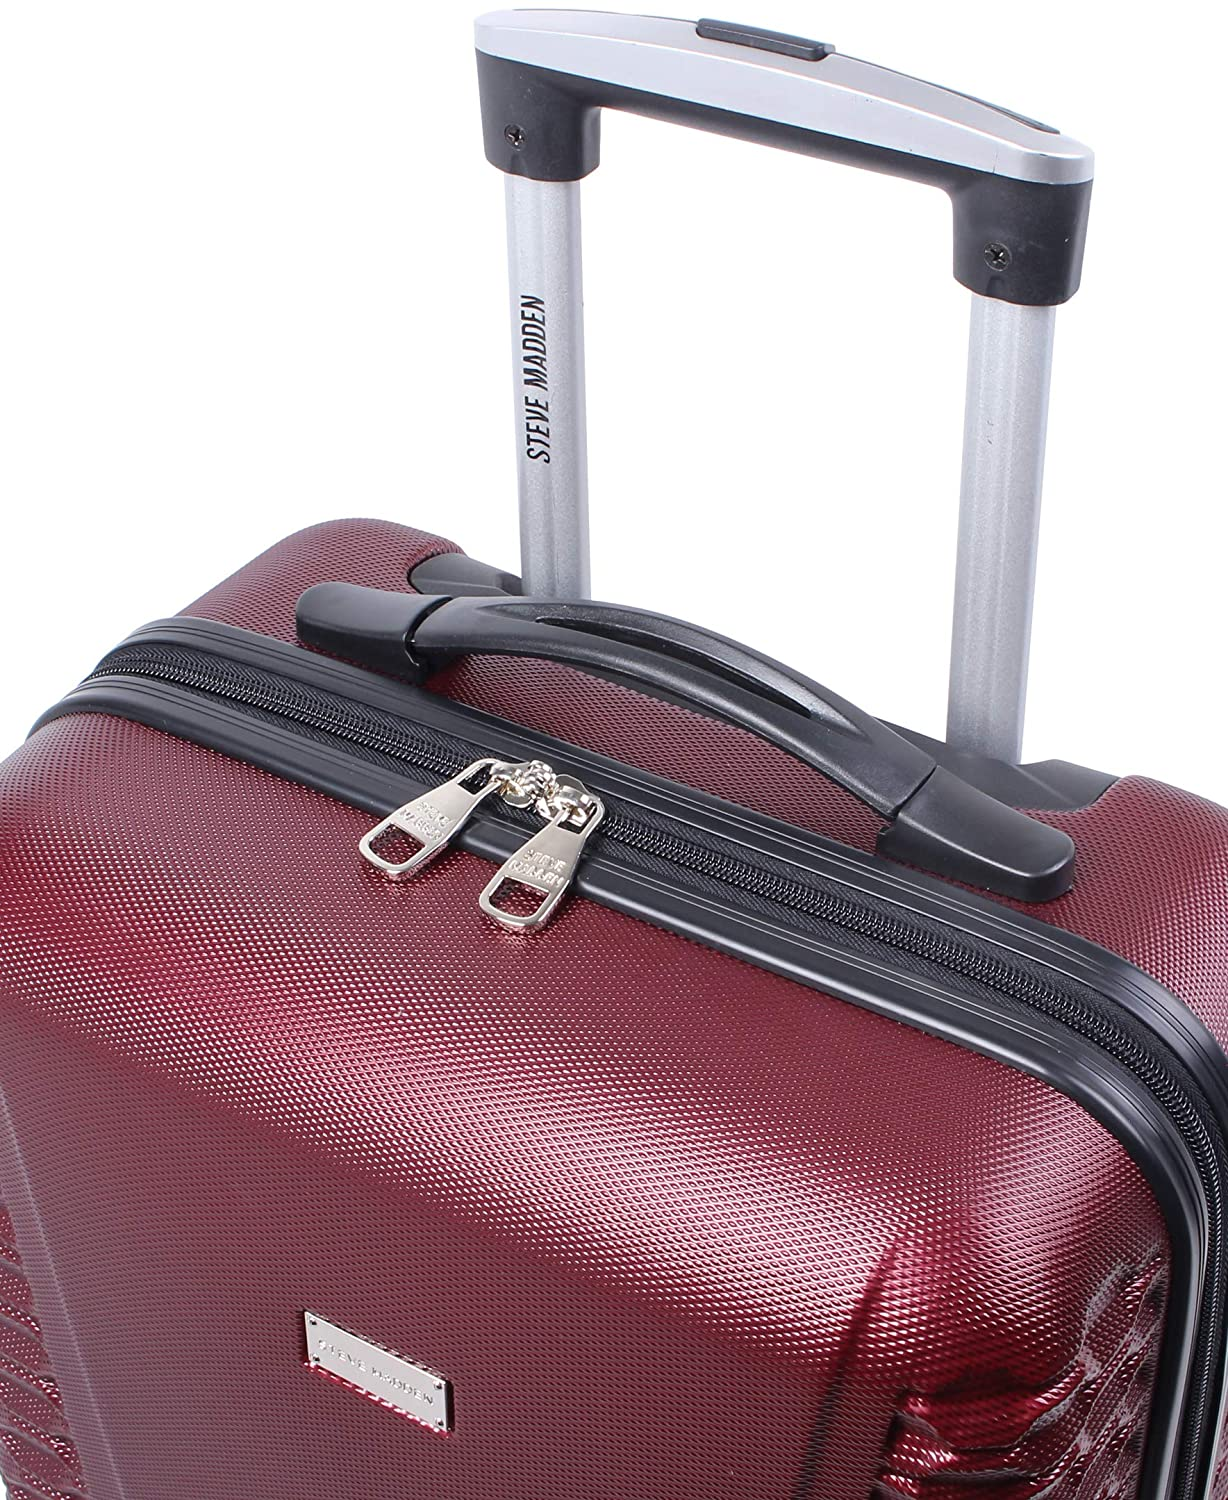 629e6ae48519 Steve Madden Antics Luggage 24'' Hardside Suitcase With Spinner Wheels  (Antics Red, 24in)